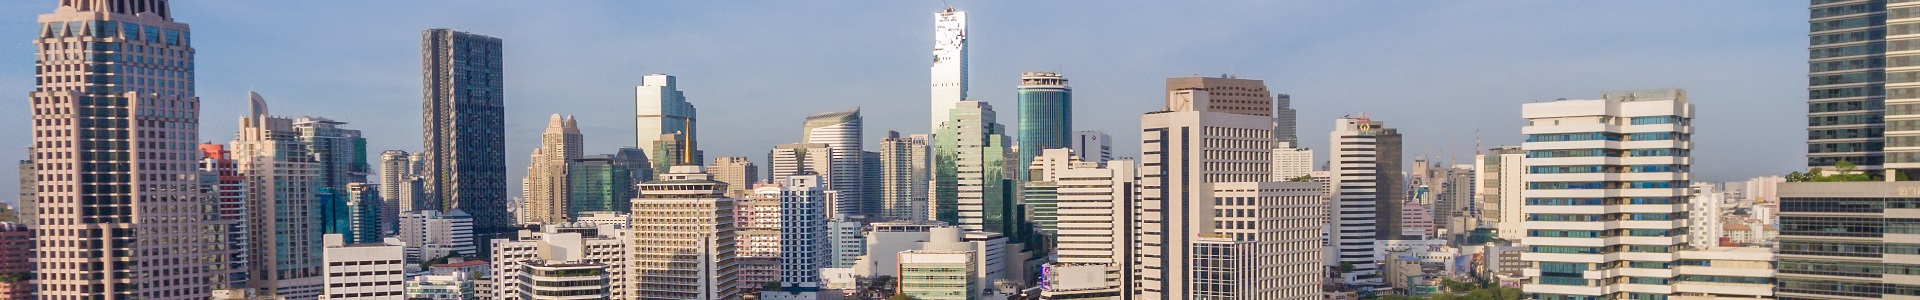 Bangkok Thailand city skyline at central business district of Sathorn